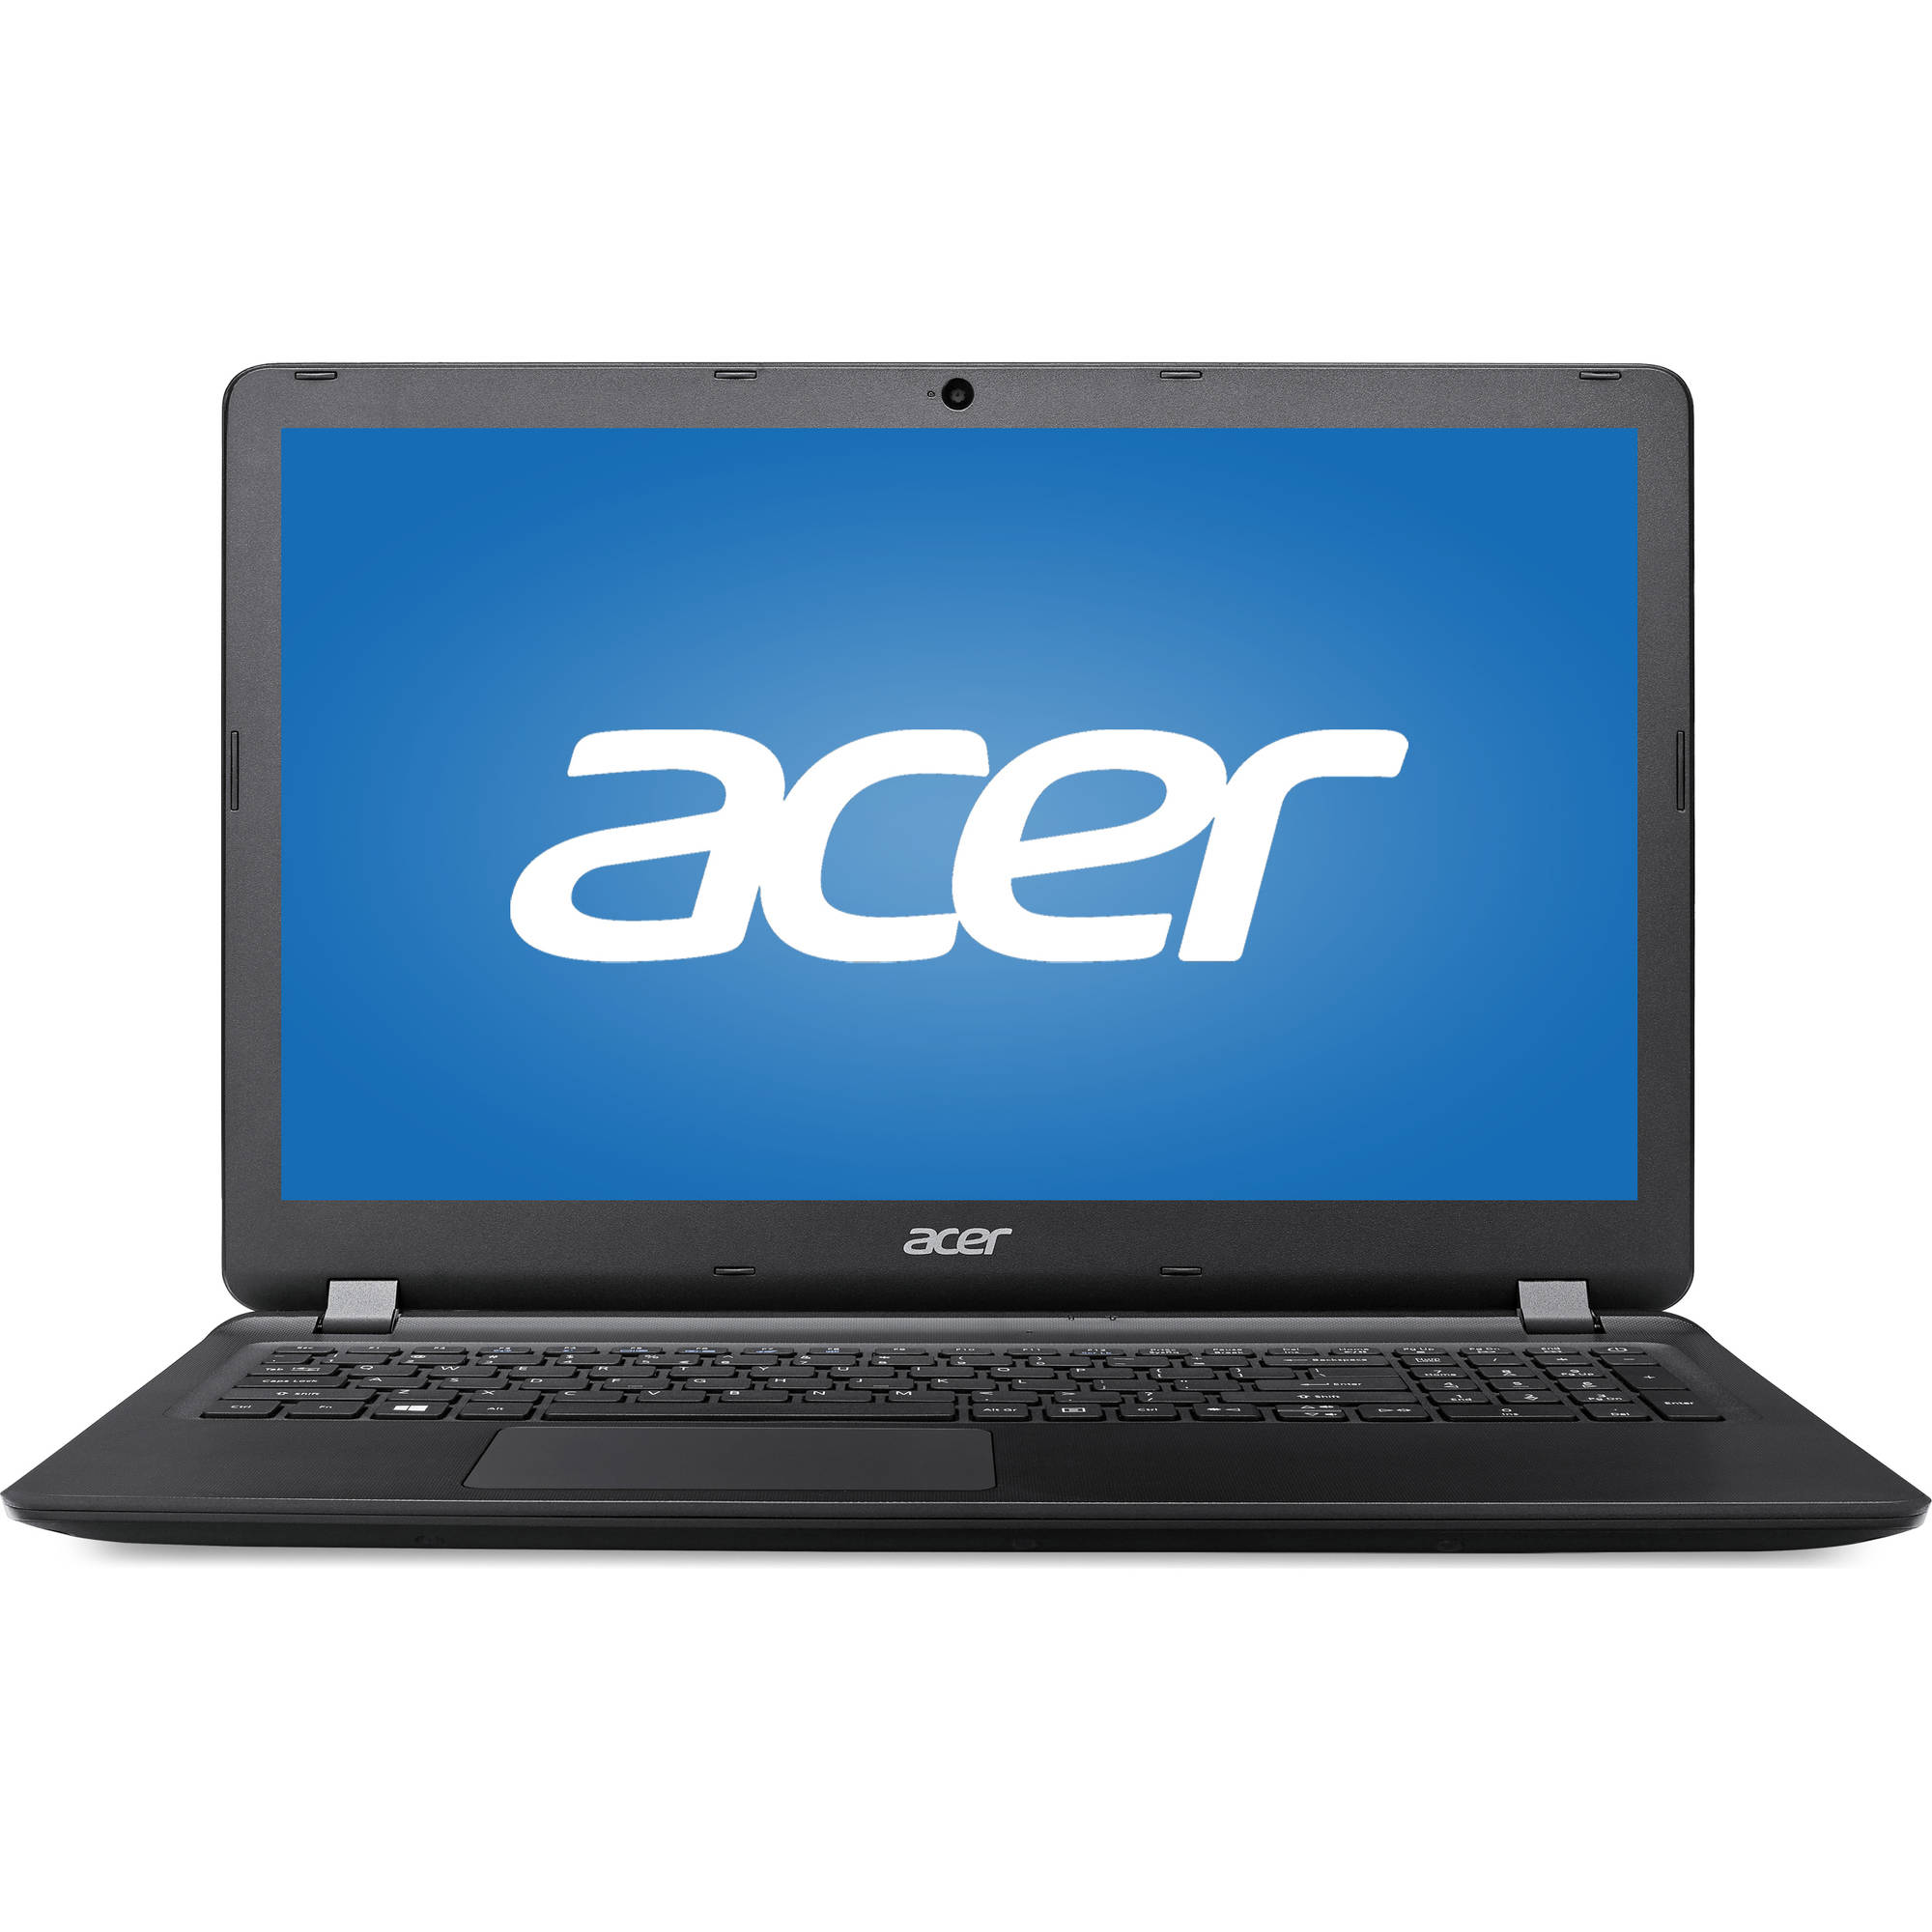 "Acer Aspire ES1-533-C3VD 15.6"" Laptop, Windows 10 Home, Intel Celeron N3350 Processor, 4GB RAM, 500GB Hard Drive"